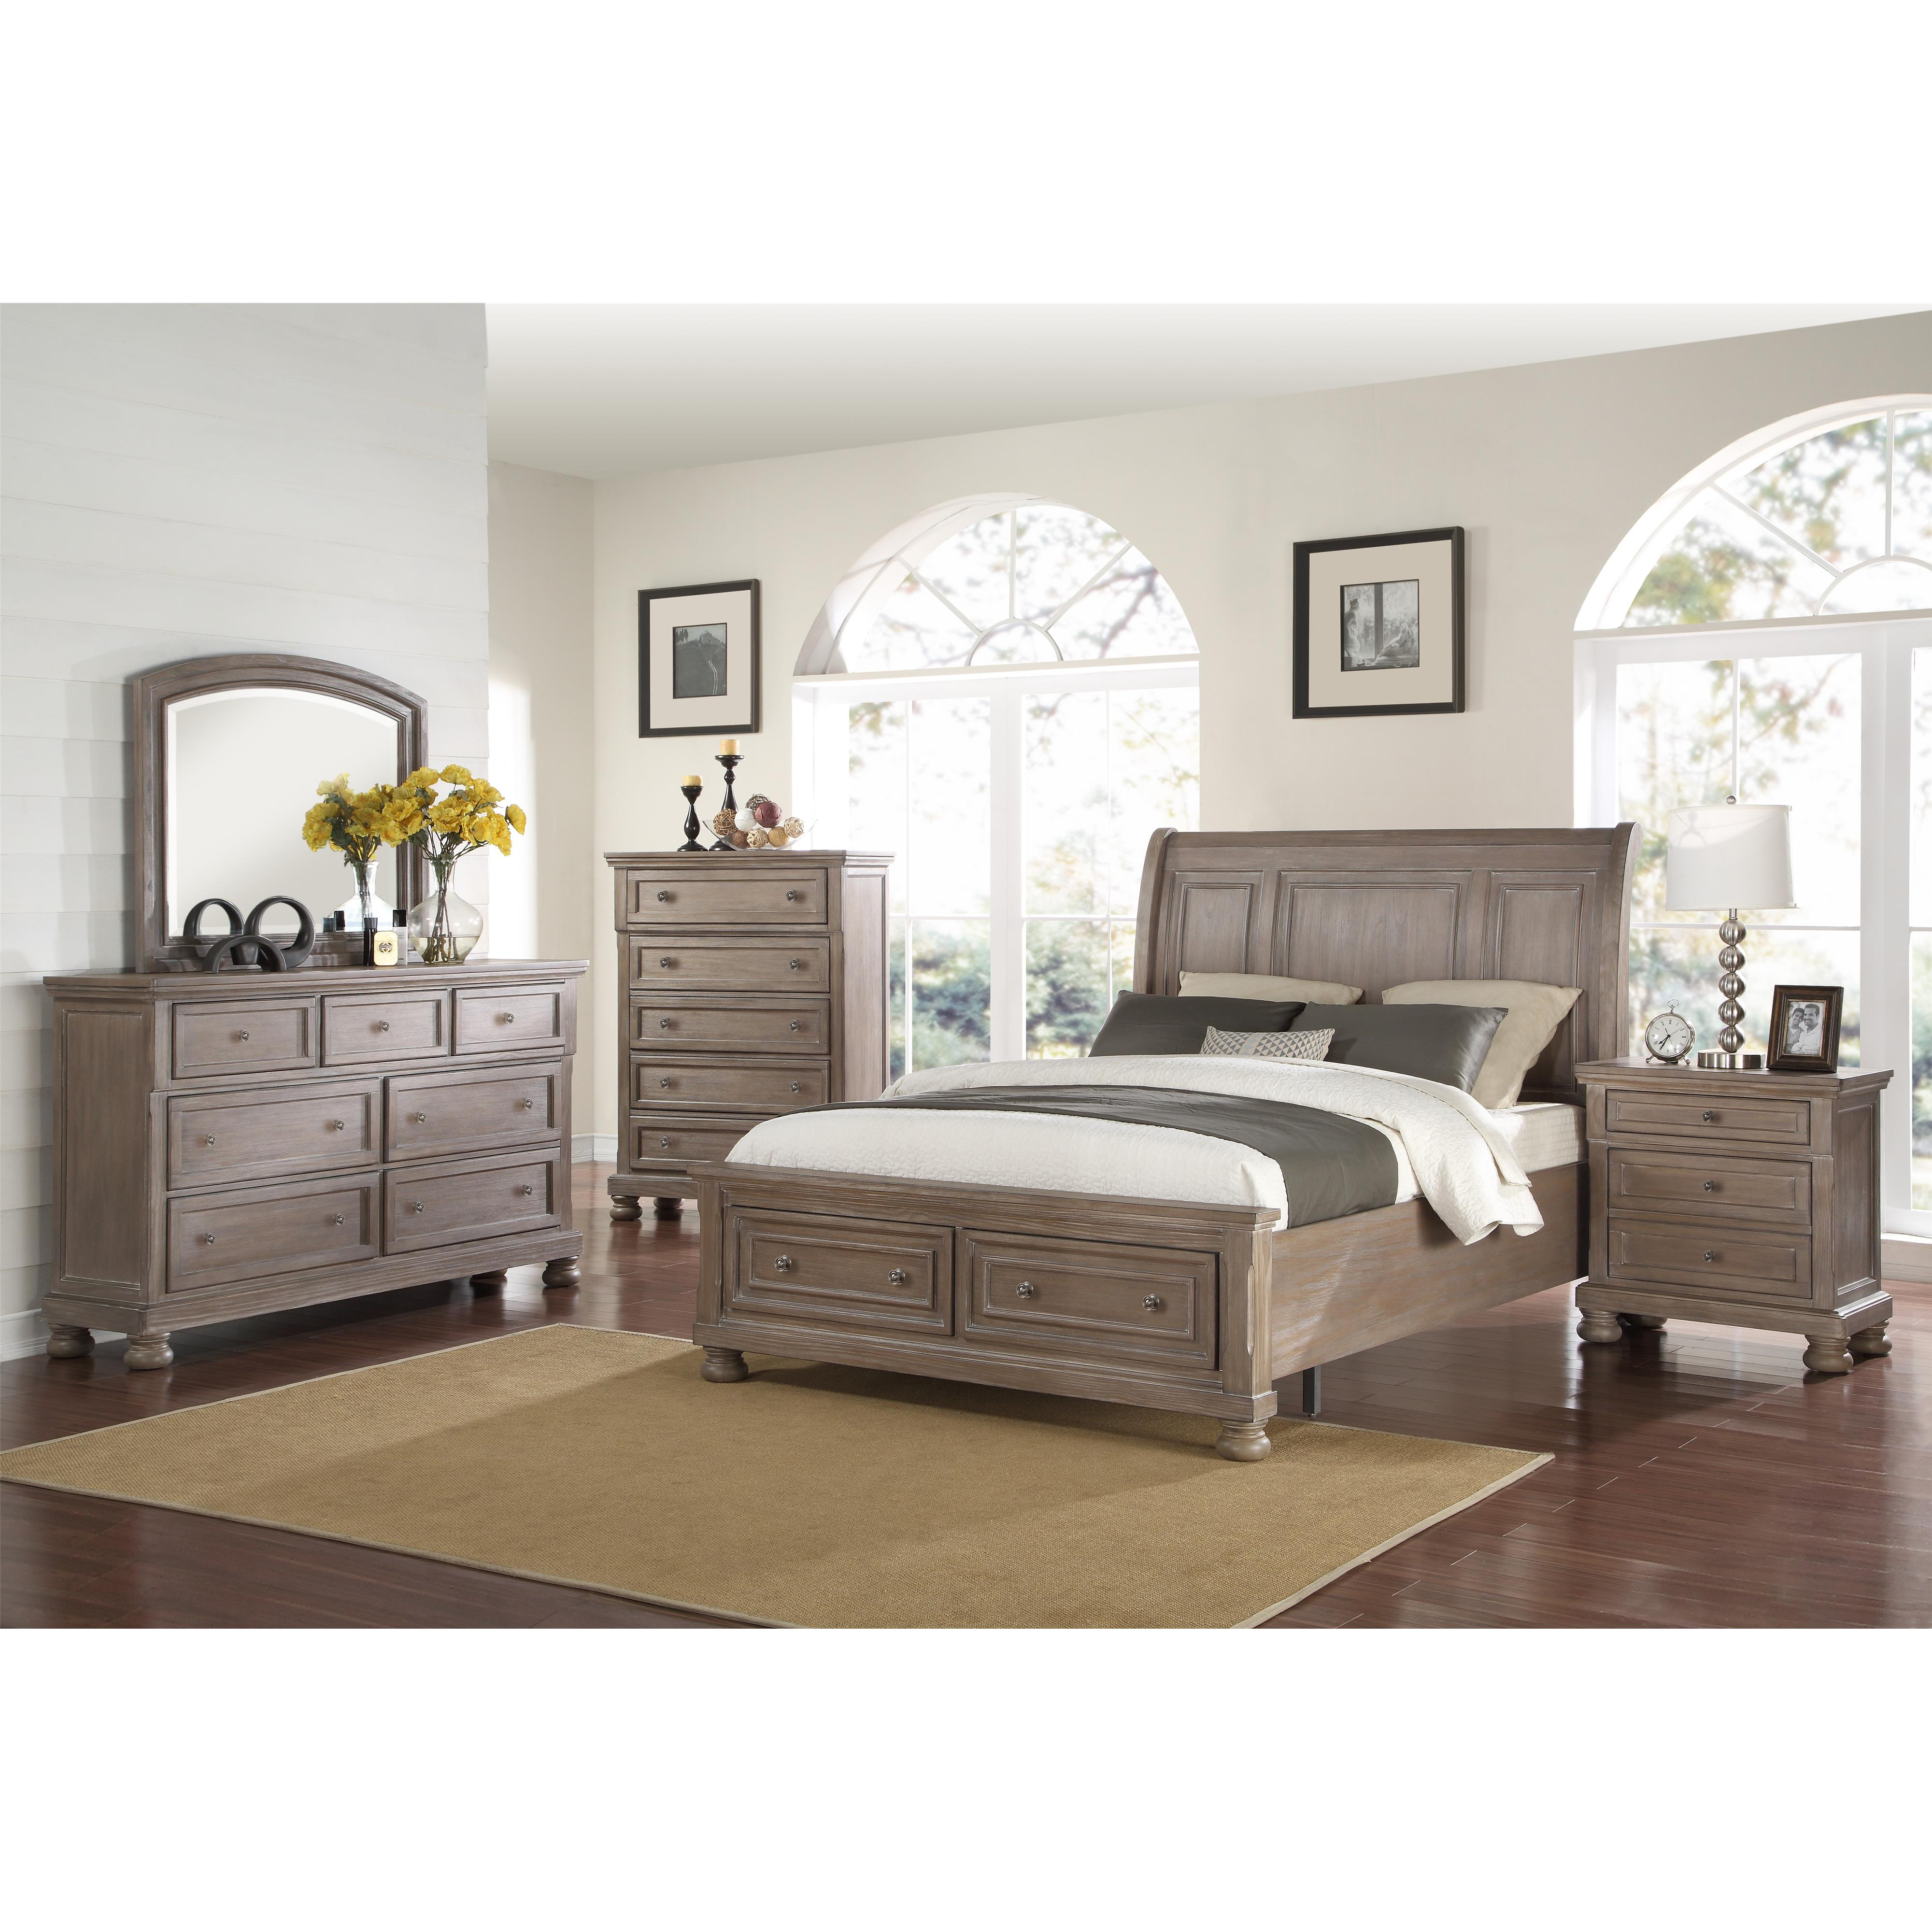 Allegra Queen Bedroom Group by New Classic at Carolina Direct